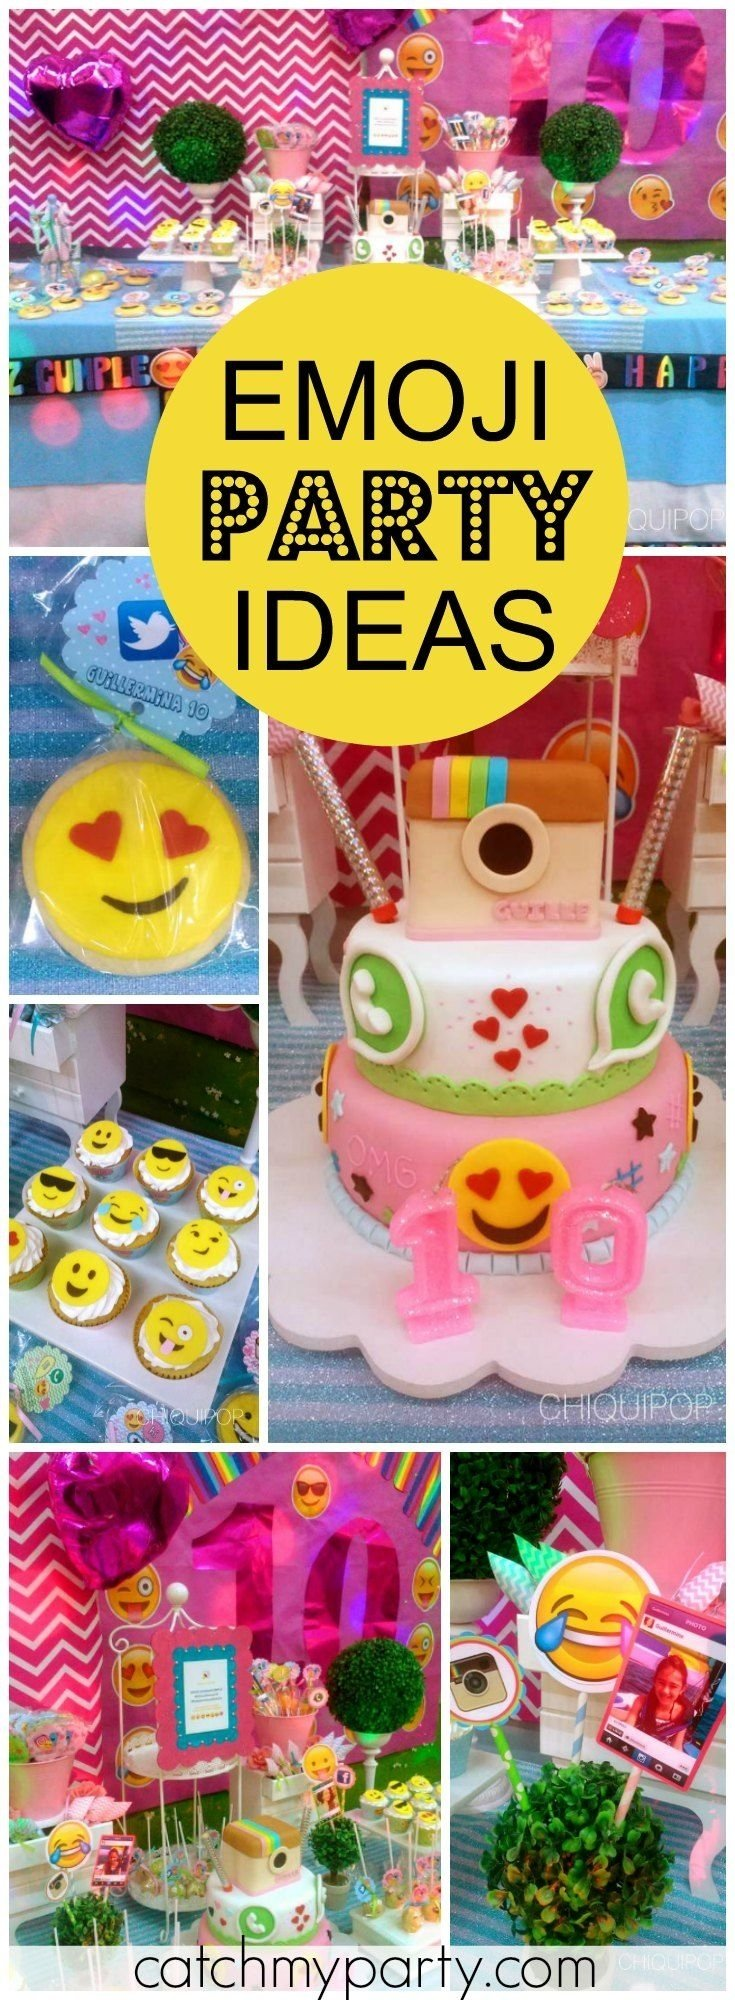 10 Gorgeous Birthday Ideas For 8 Year Old Girl 12 best thirteenth birthday images on pinterest birthdays party 1 2021